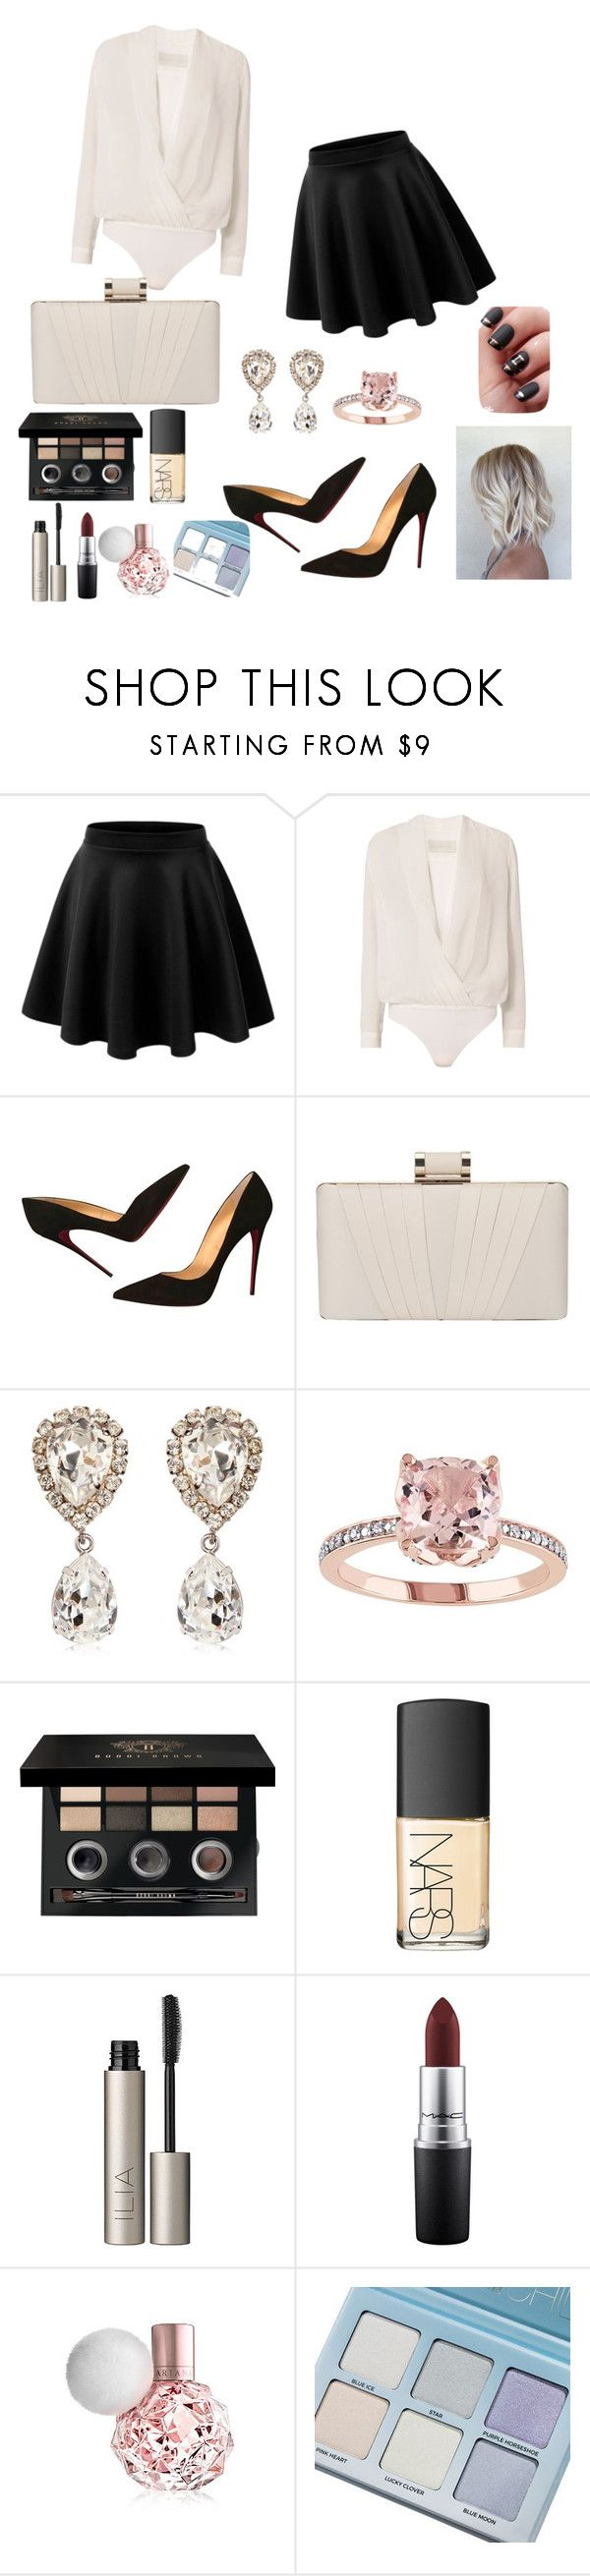 """Untitled #597"" by elma-alibasic on Polyvore featuring Michelle Mason, Christian Louboutin, Phase Eight, Dolce&Gabbana, Bobbi Brown Cosmetics, NARS Cosmetics, Ilia, MAC Cosmetics and ARI"